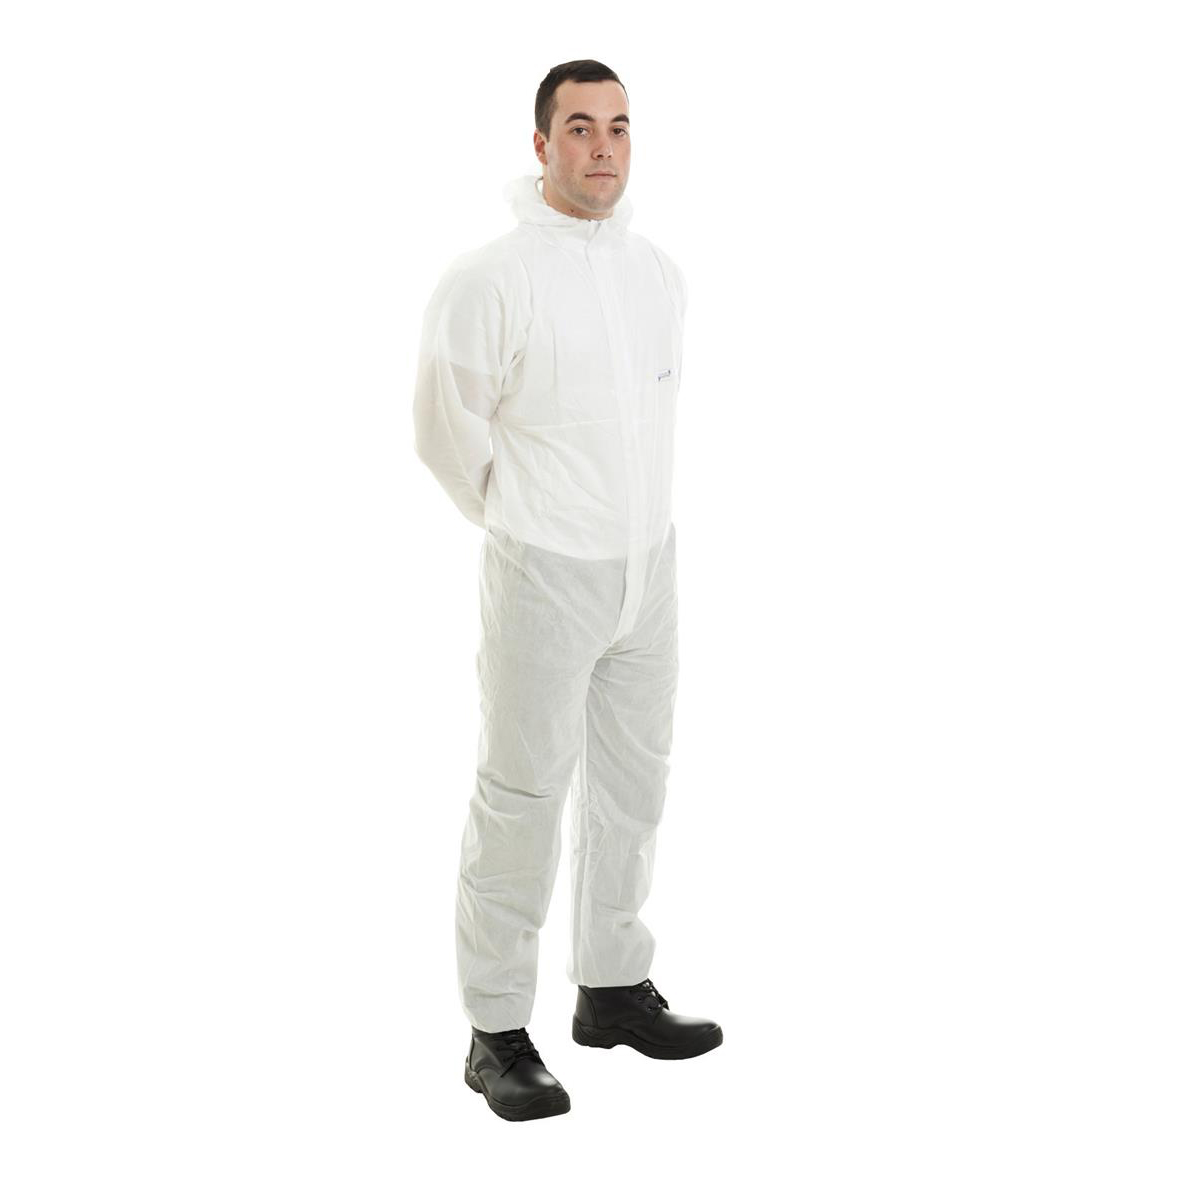 Supertouch Supertex SMS Coverall Type 5/6 Protection Small White Ref 17601 *Approx 3 Day Leadtime*